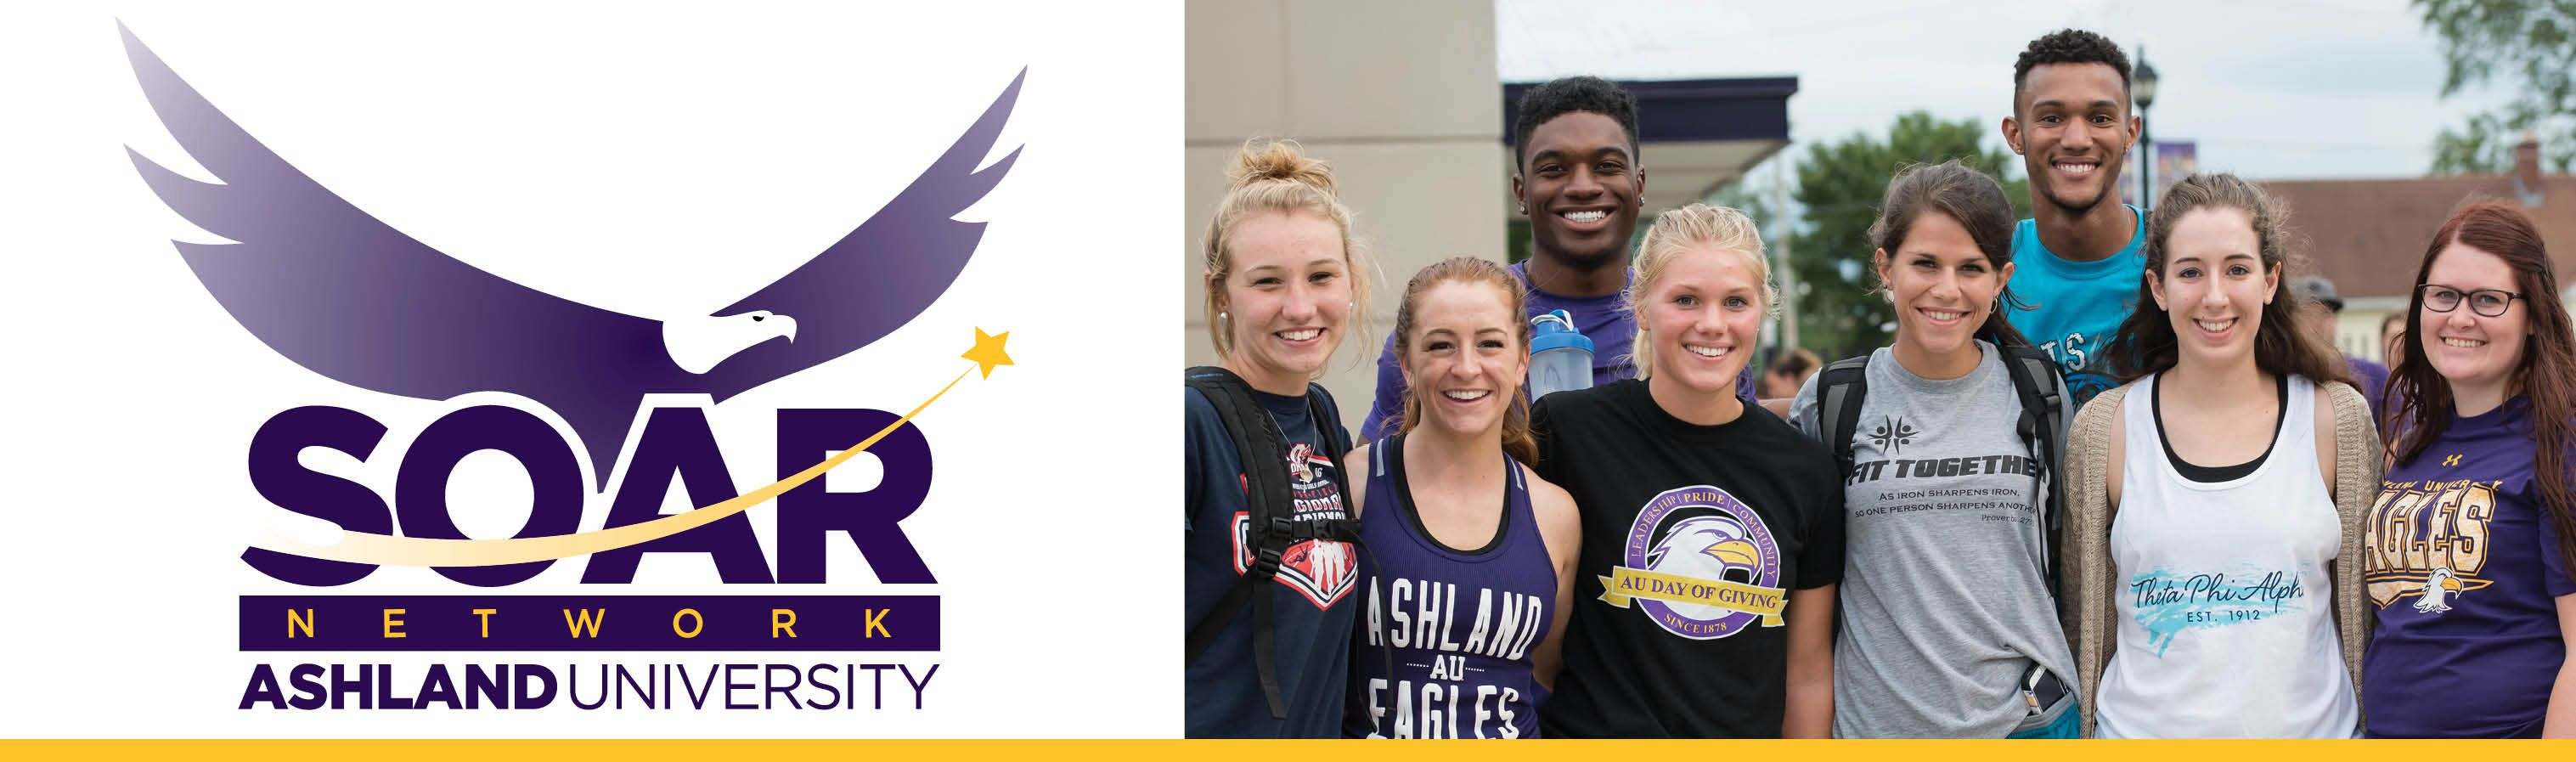 SOAR Network banner with eagle and rising star